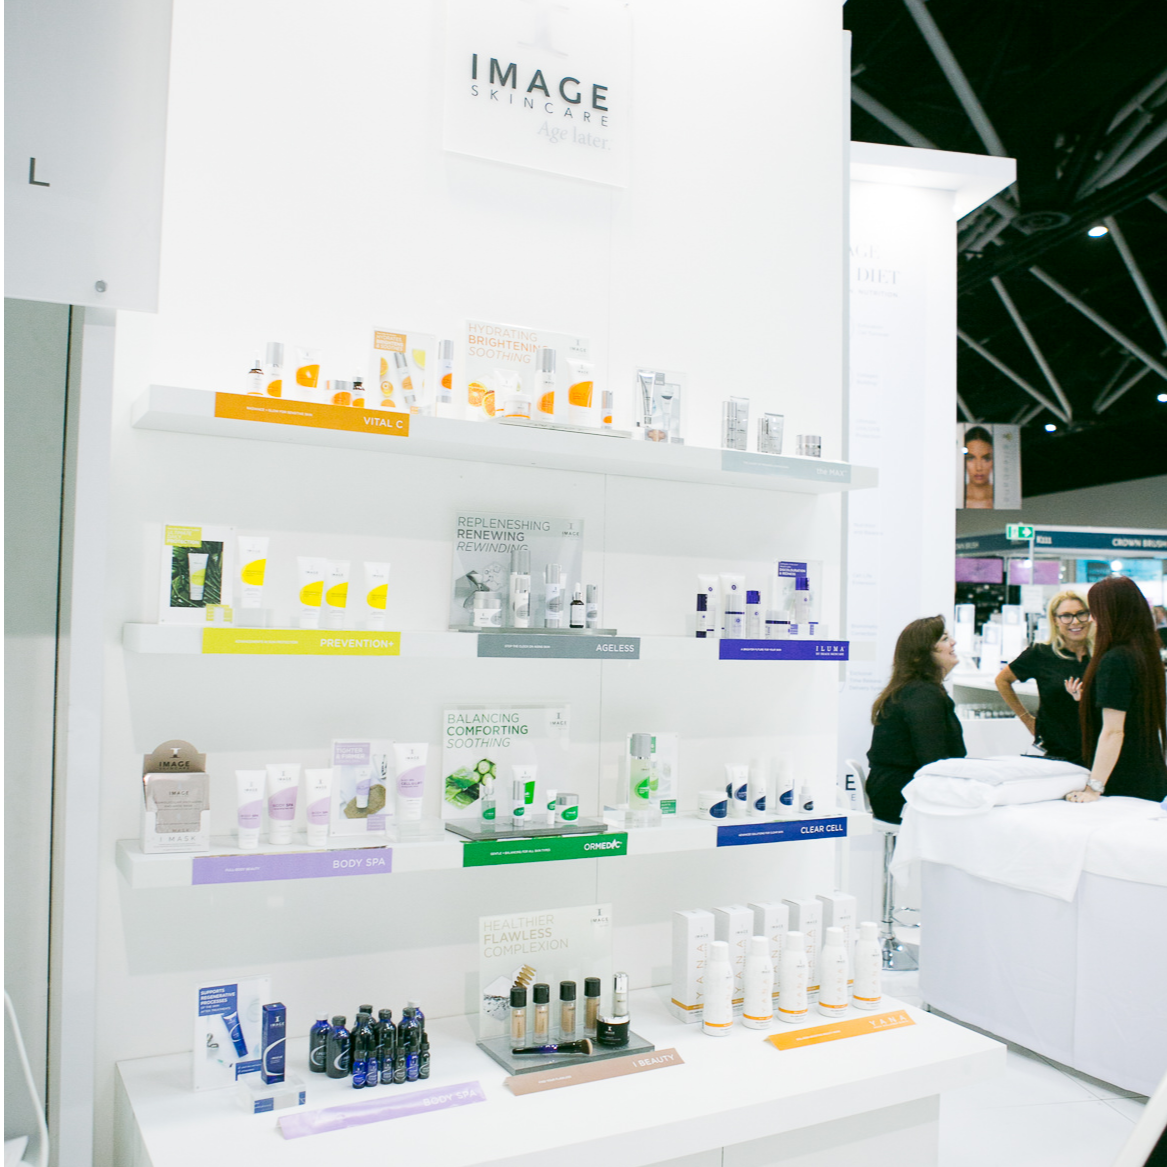 Image Skincare at Beauty Expo Australia - Image Skincare